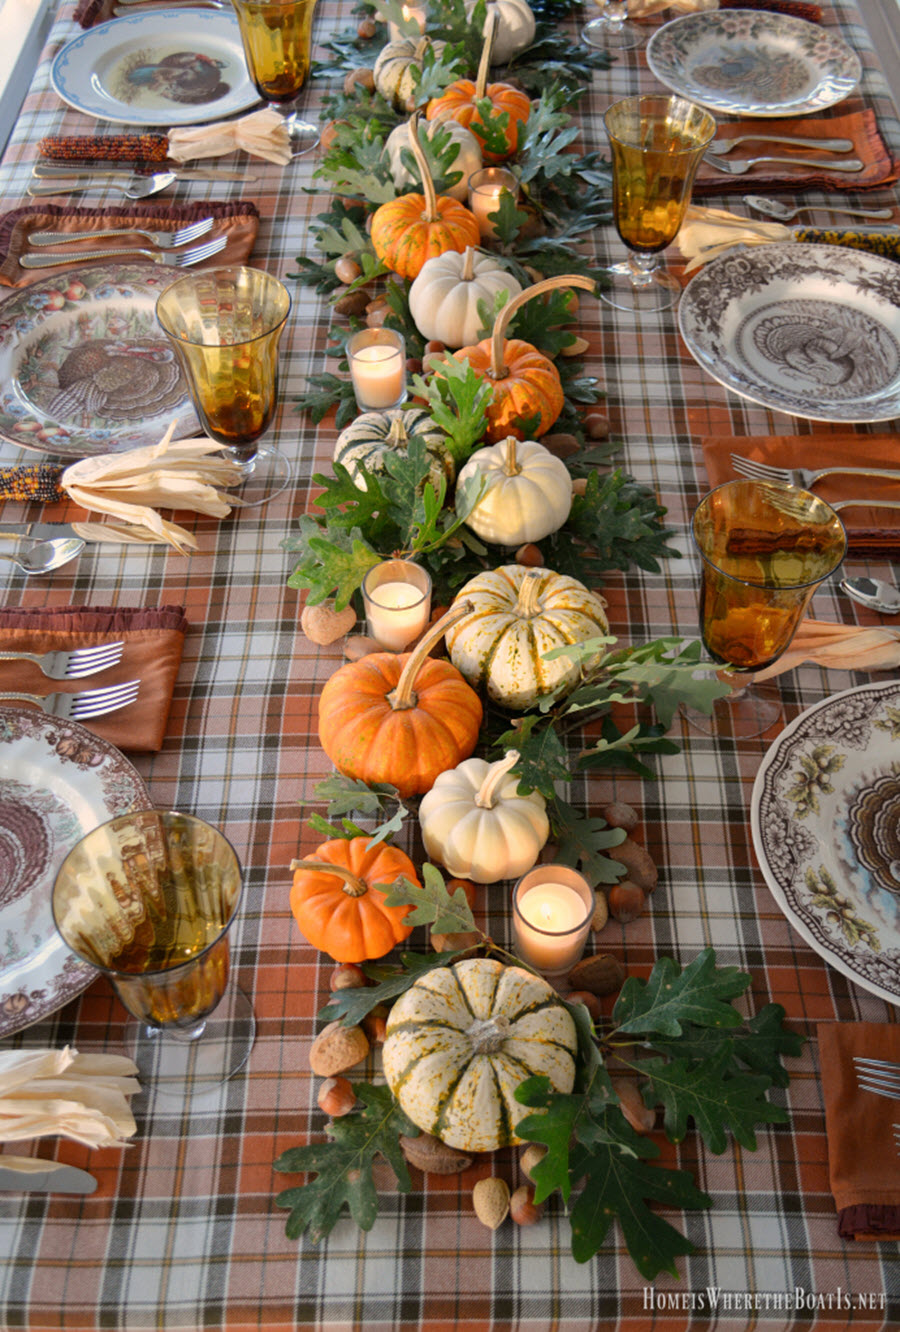 Thanksgiving Table Decor Ideas - Eucalyptus + Flower Centerpiece